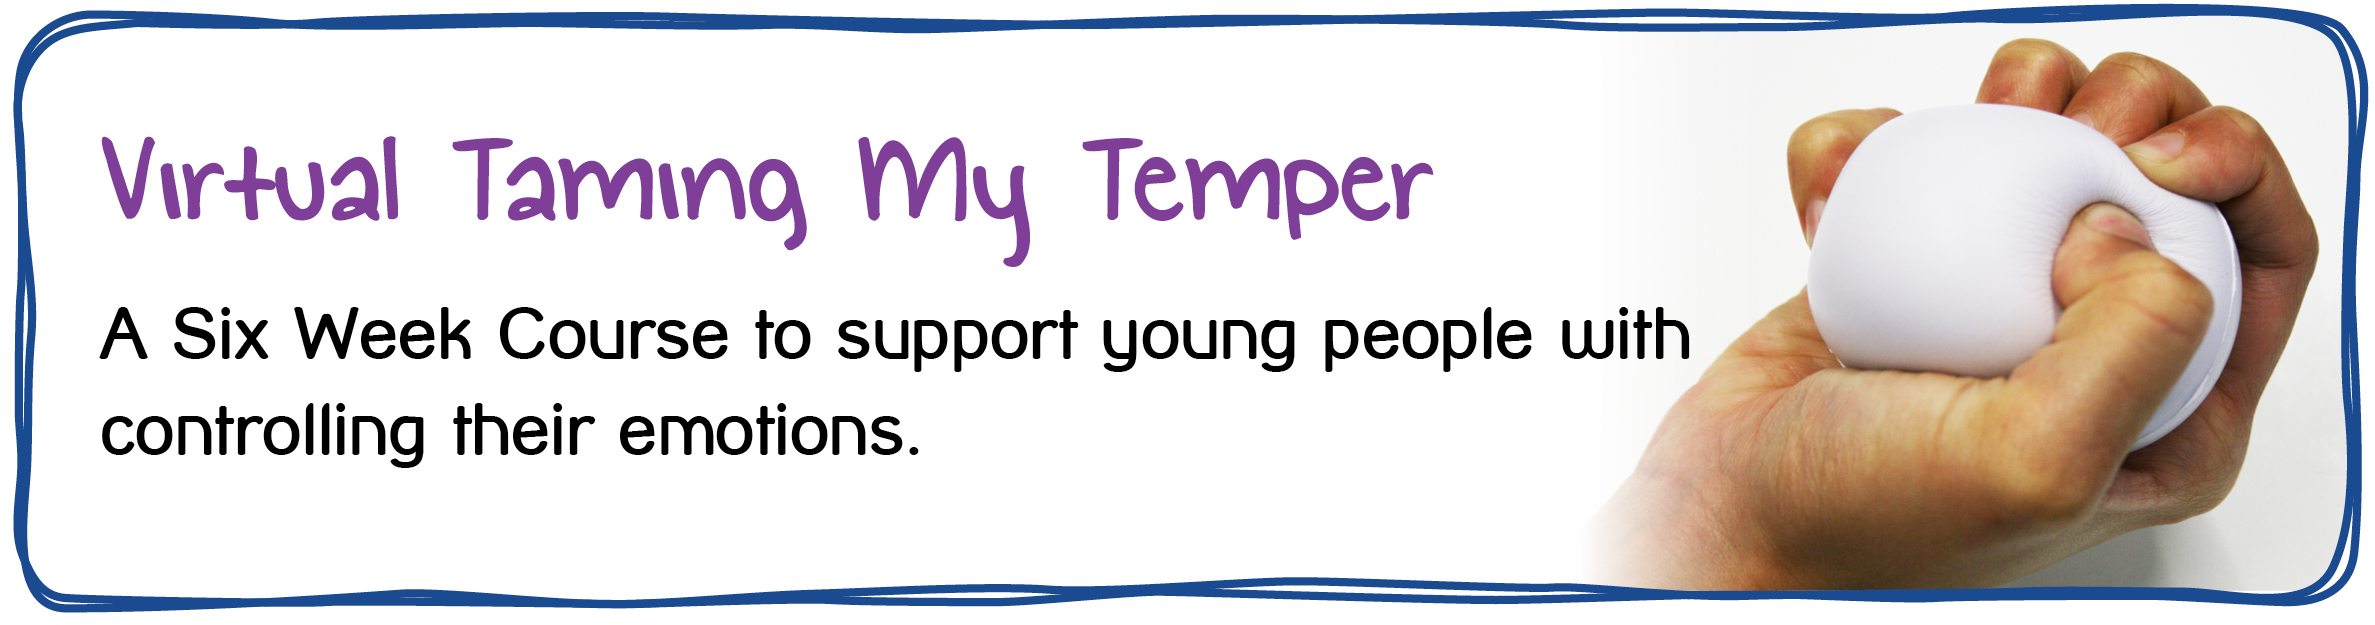 Virtual Taming My Temper - A Six Week Course to support young people with controlling their emotions.